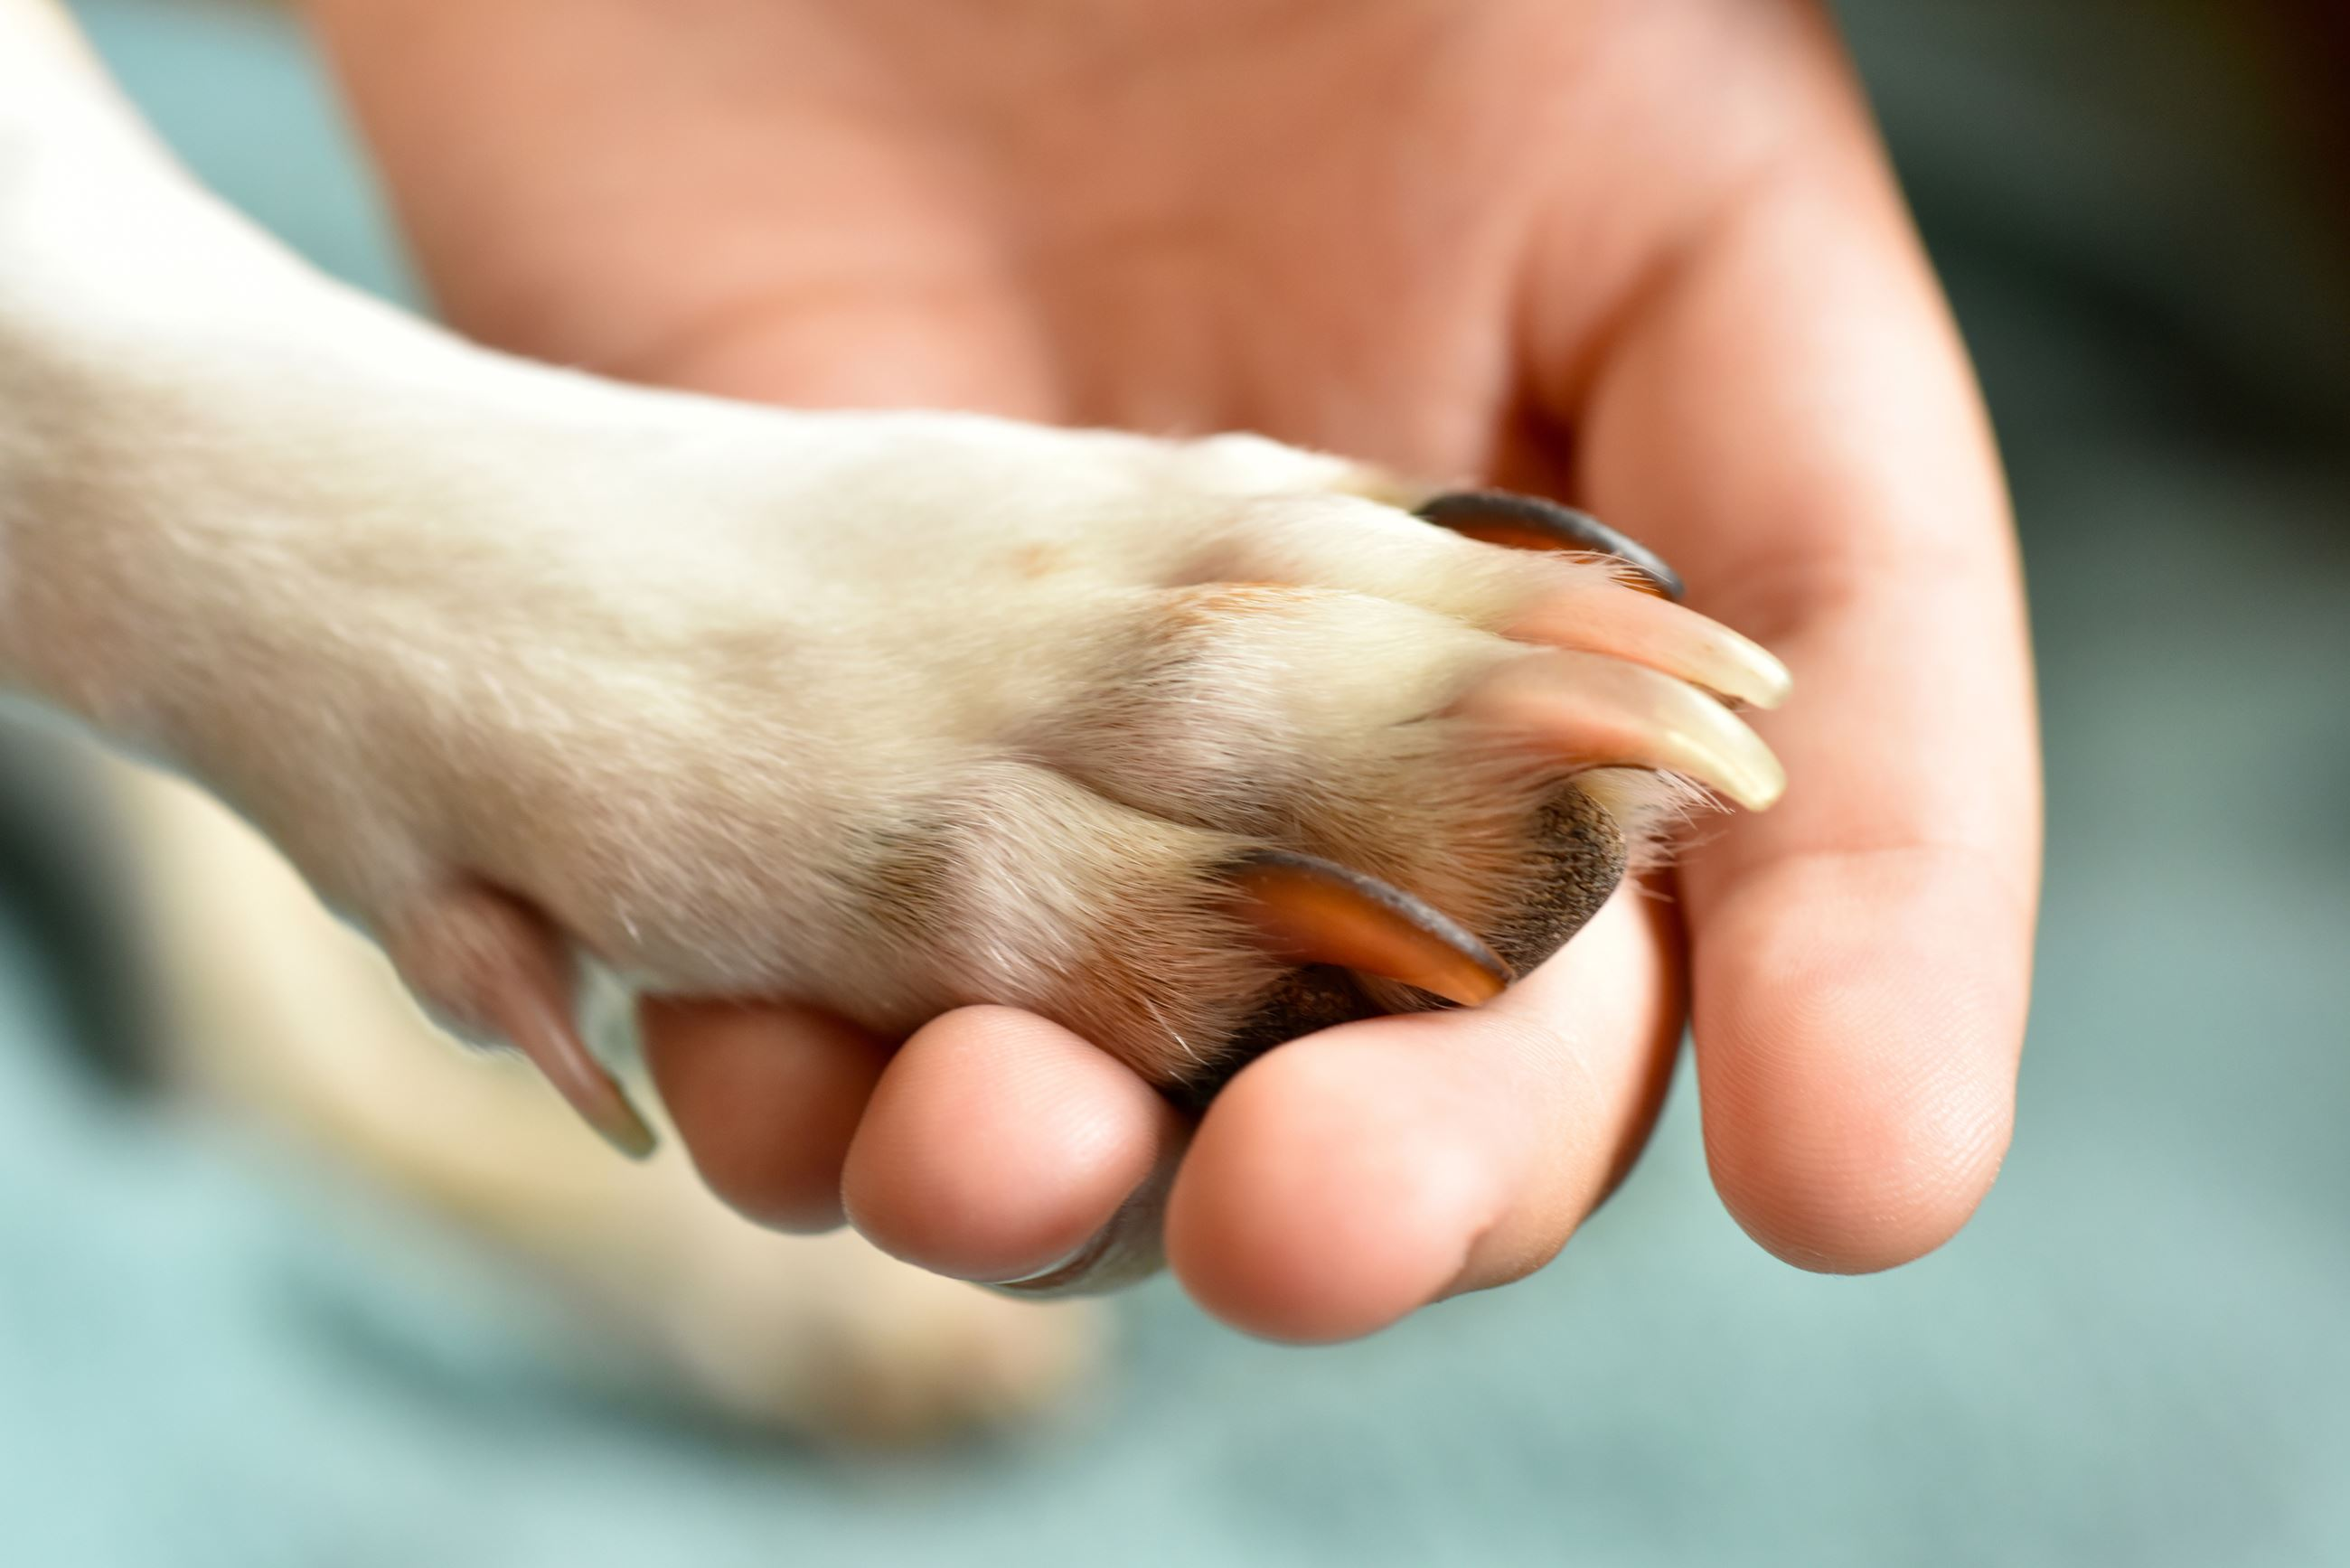 A dog paw being held by a person's hand